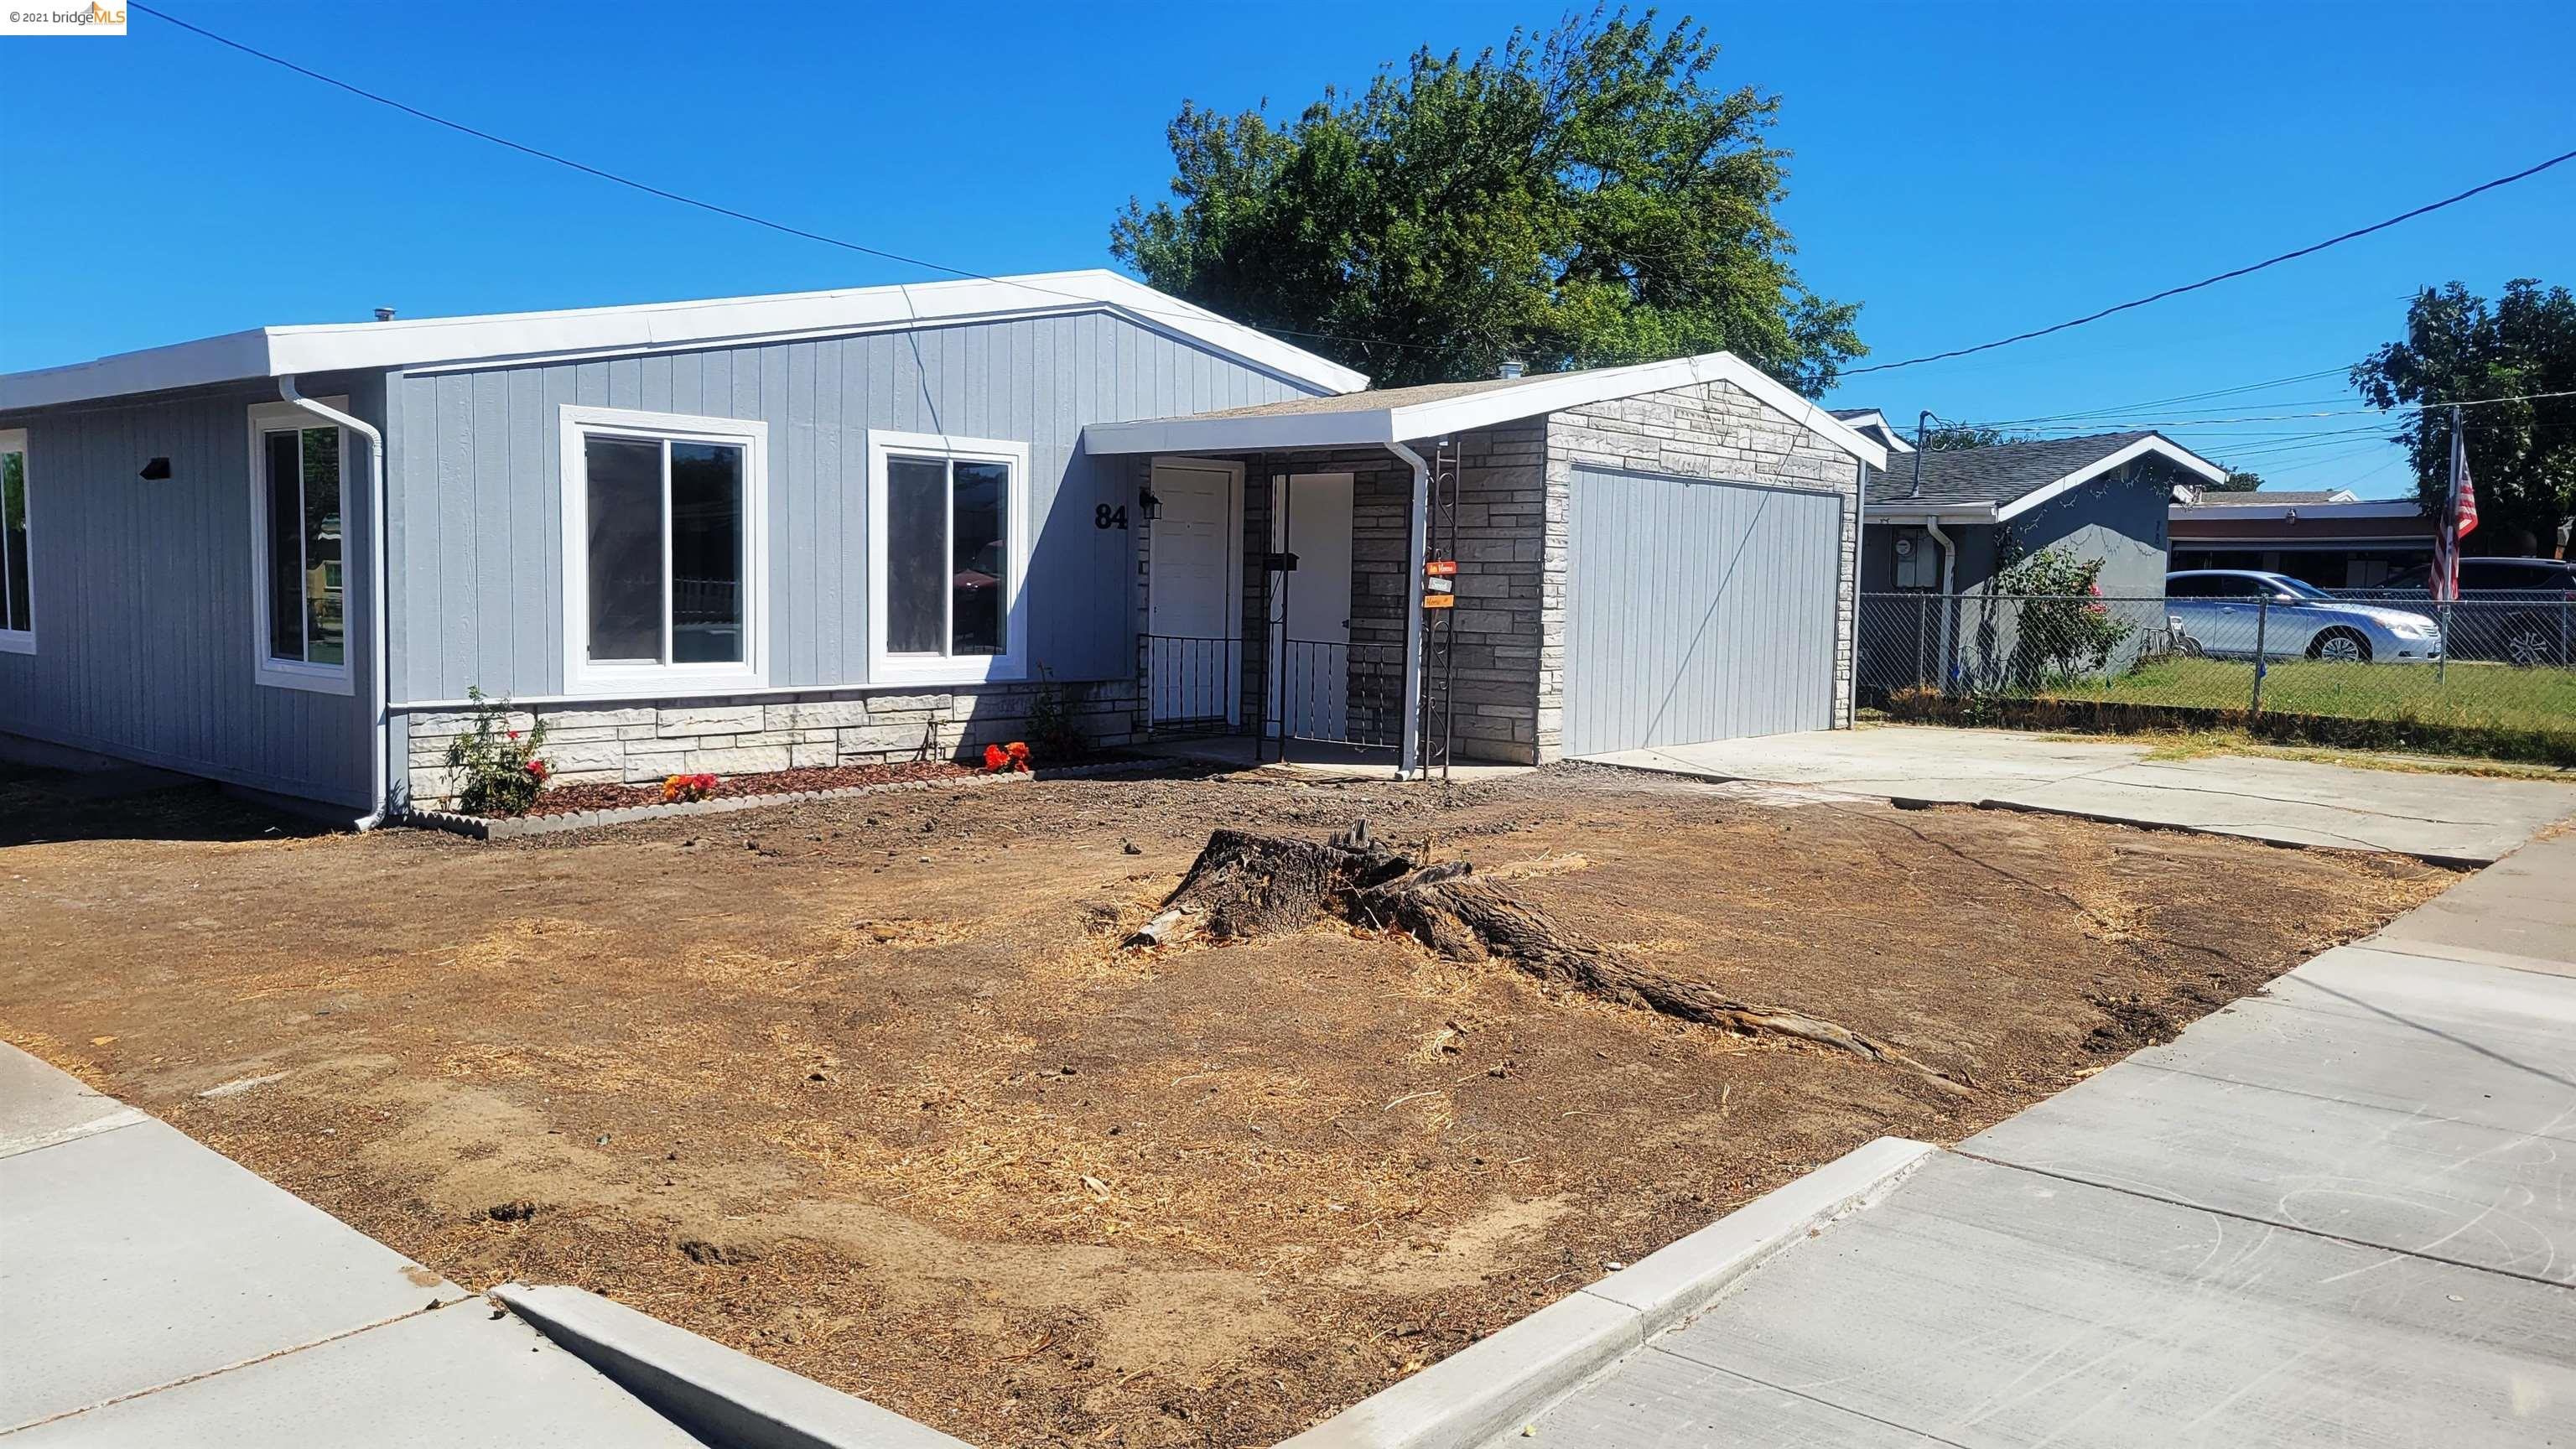 OPEN HOME 9/19 from 12-2. Lovely single story home! Completely remodeled! Welcome Home to a beautiful single-family one-story completely remodeled corner home.Public record shows 3 bed/1 bath, 882 sq ft, one car garage, 5,000 sq ft lot. Car garage was converted to 4thbedrm  &Laundry room,  making this home 1,052 sq ft (no permit for conversion).Oversized Private backyard is a great opportunity to make it into your own. Space for a garage and/or RV parking.Bright living room, wood beam high ceiling, and lots of natural light. Spacious bedrooms with wood beam high ceiling.Modern white kitchen, new cabinets &quartz countertop, new stainless steel appliances. Eat-in kitchen.New! New! New! New: double pane windows, new doors, bathroom vanity, bathtub, Waterproof Laminate floor, siding panels, paint inside &out, Central A/C &Heater. Newer roof. Updated electrical &and plumbing. Great Neighborhood, minutes from schools, parks, close to shopping and BART station, easy access to freeway.